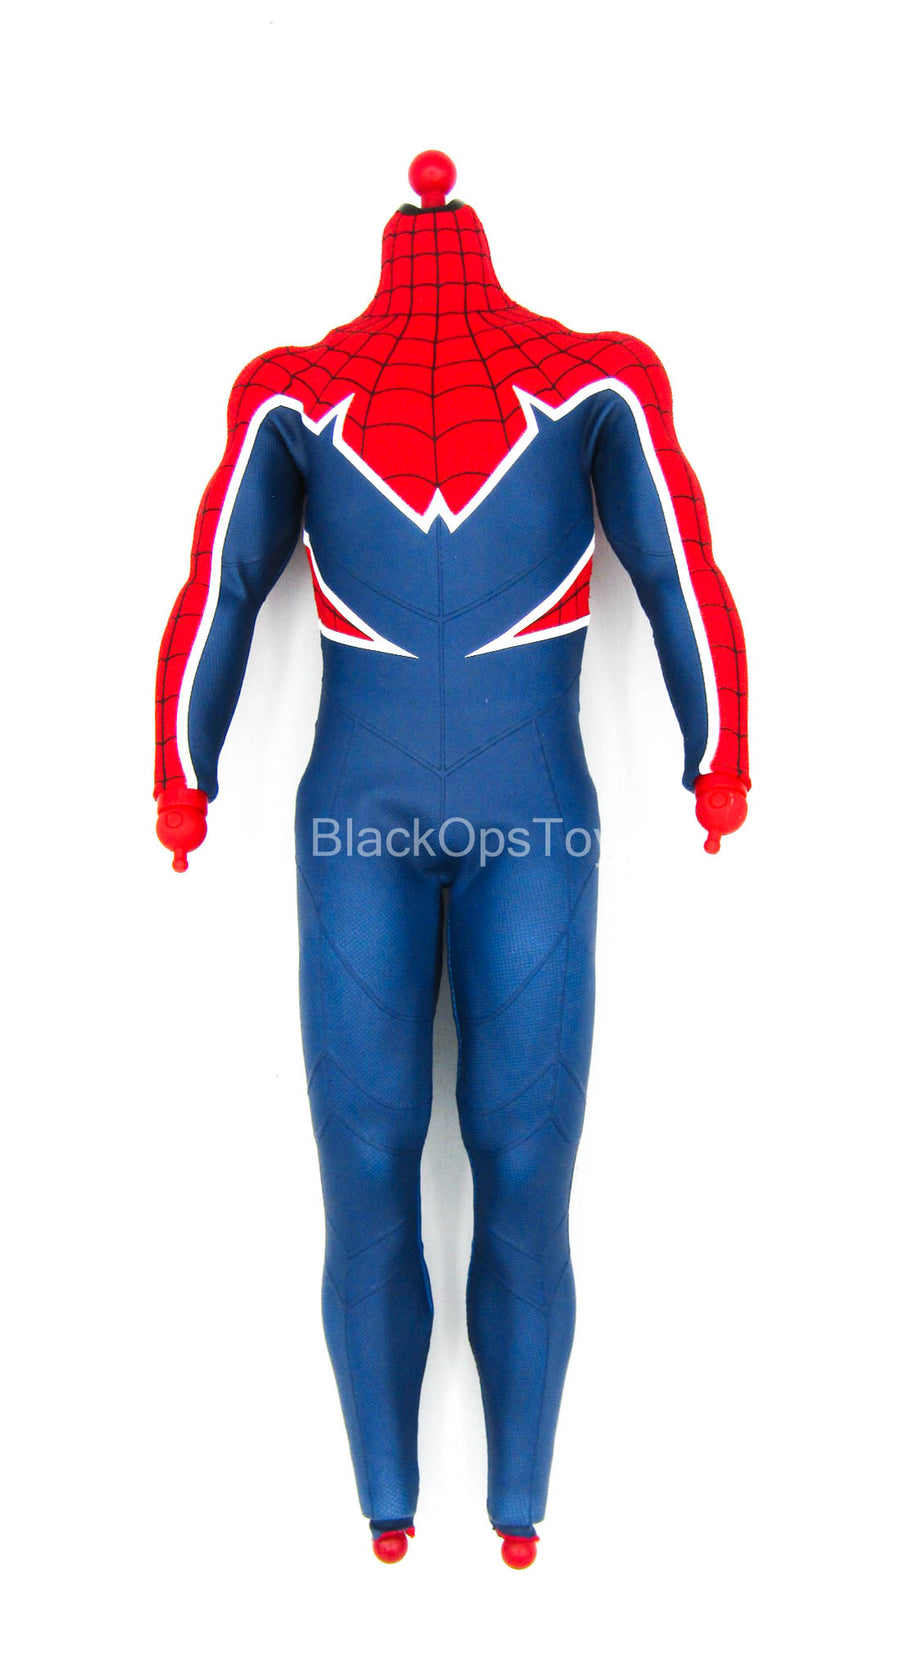 Spiderman - Male Base Body w/Uniform